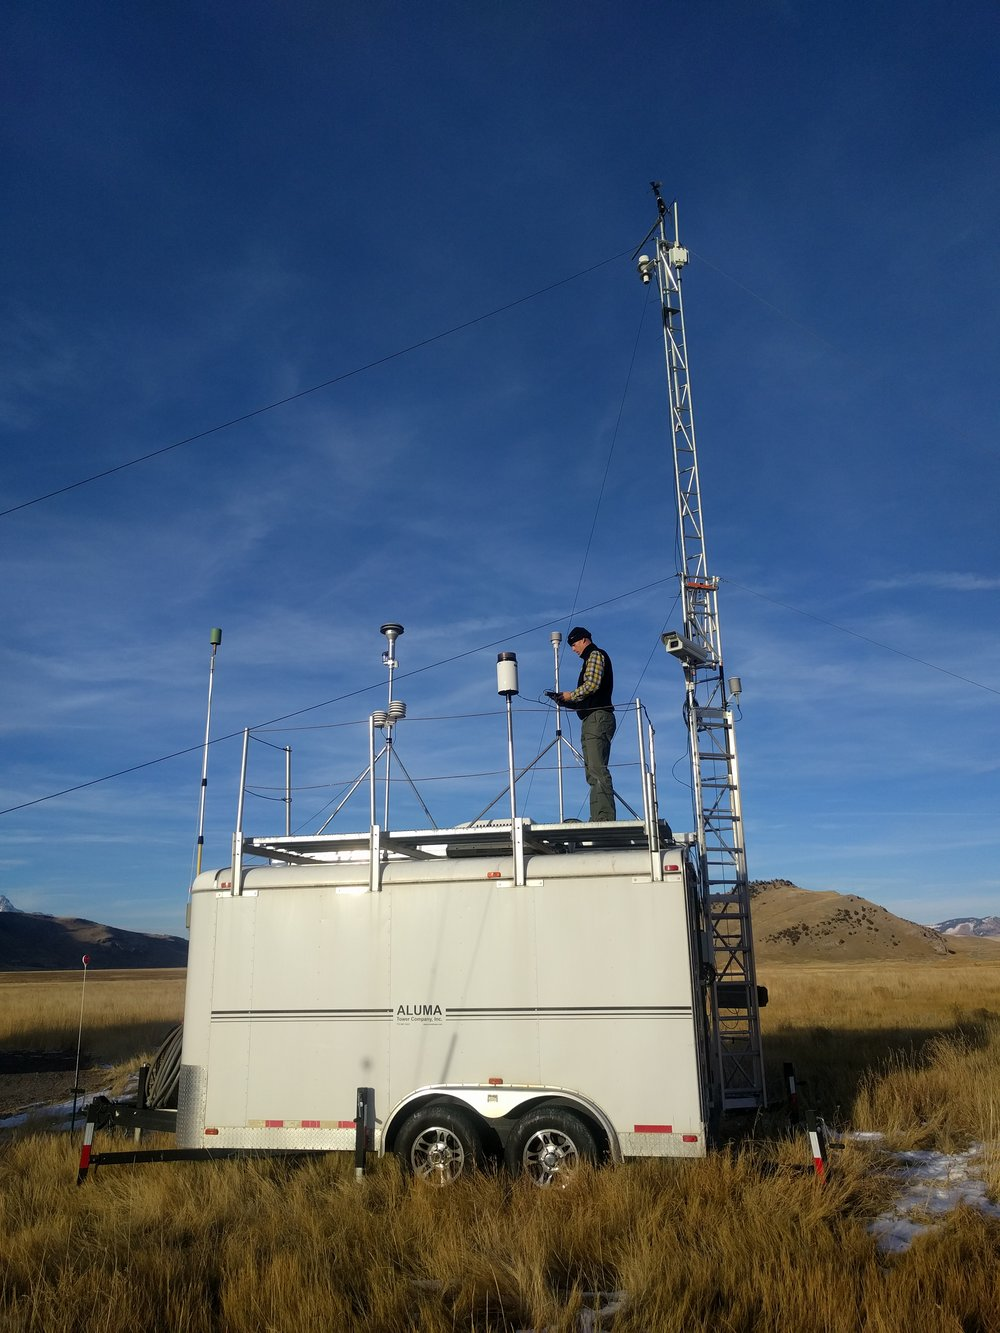 Robb checking on the instruments at the mobile air quality monitoring station.